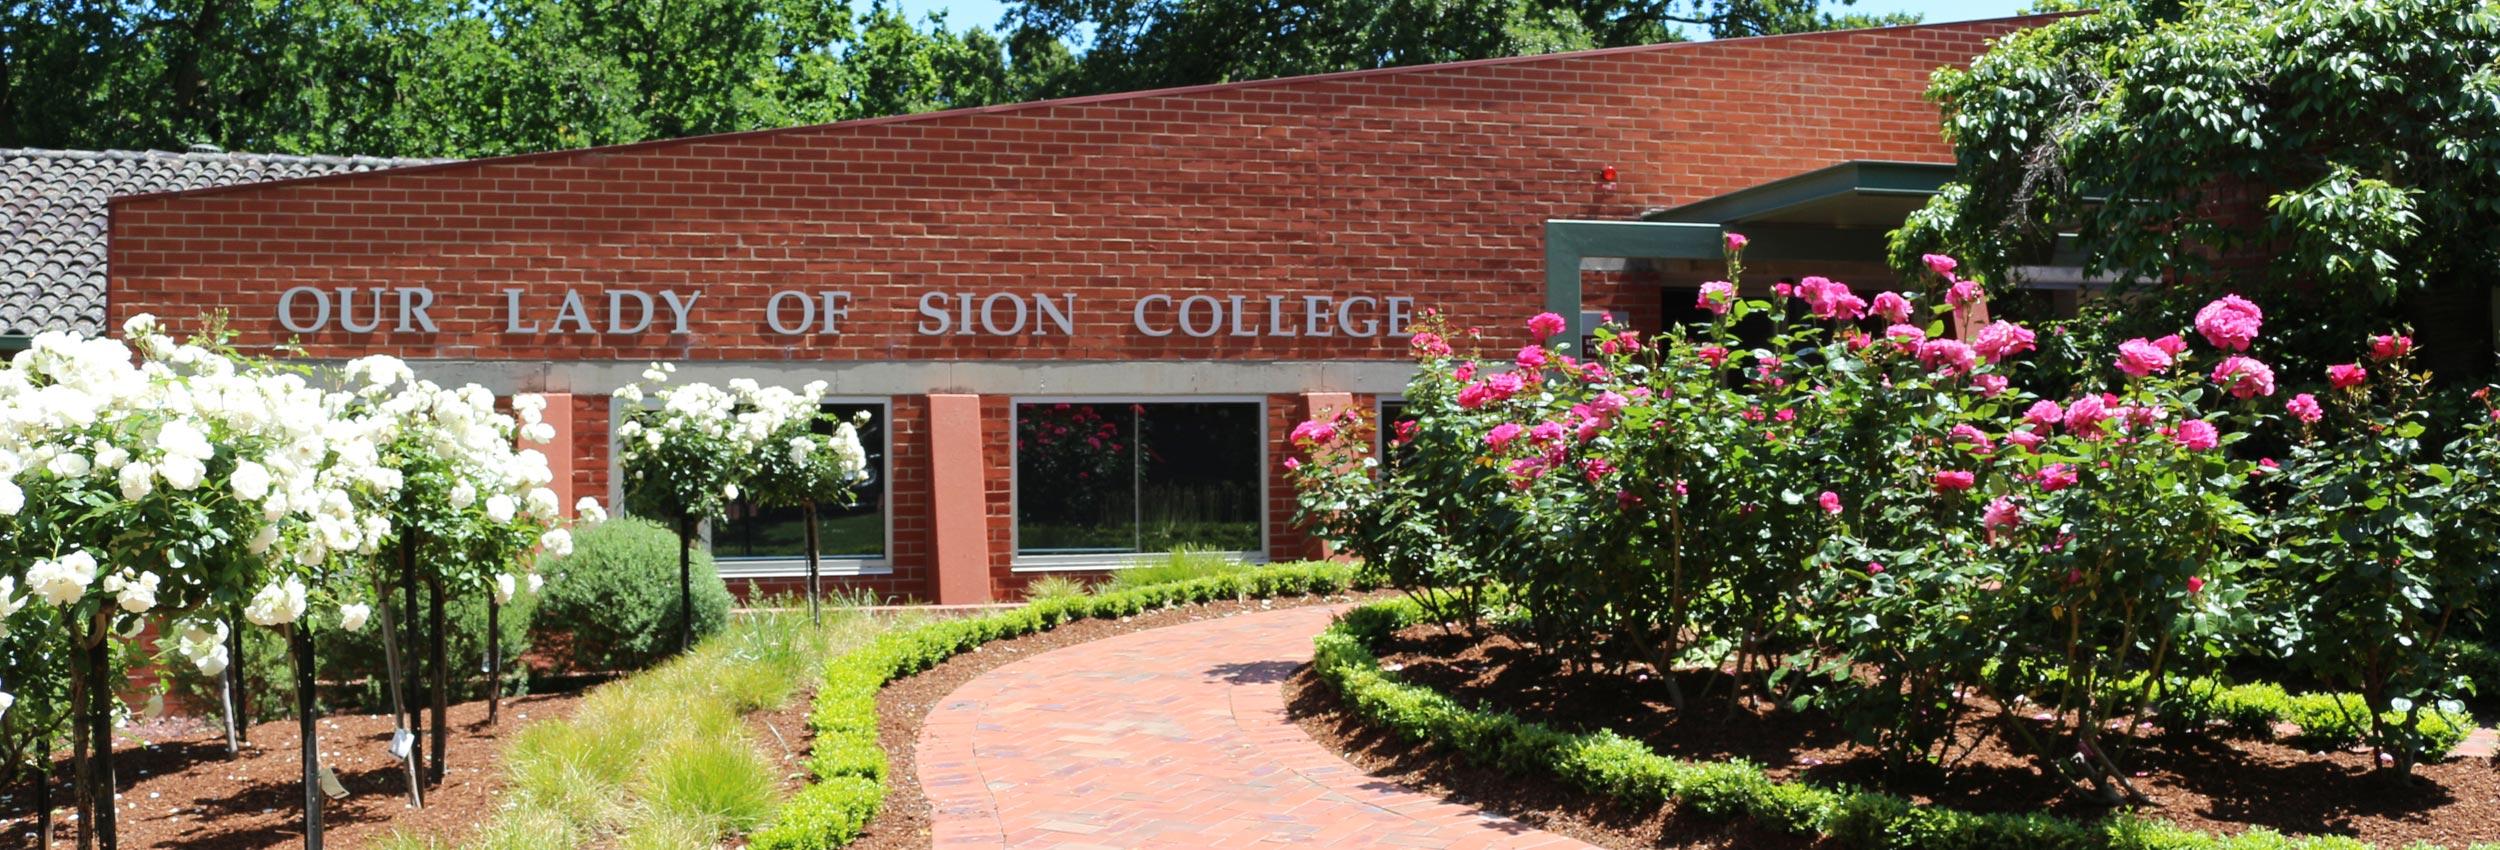 Image of Our Lady of Sion College building